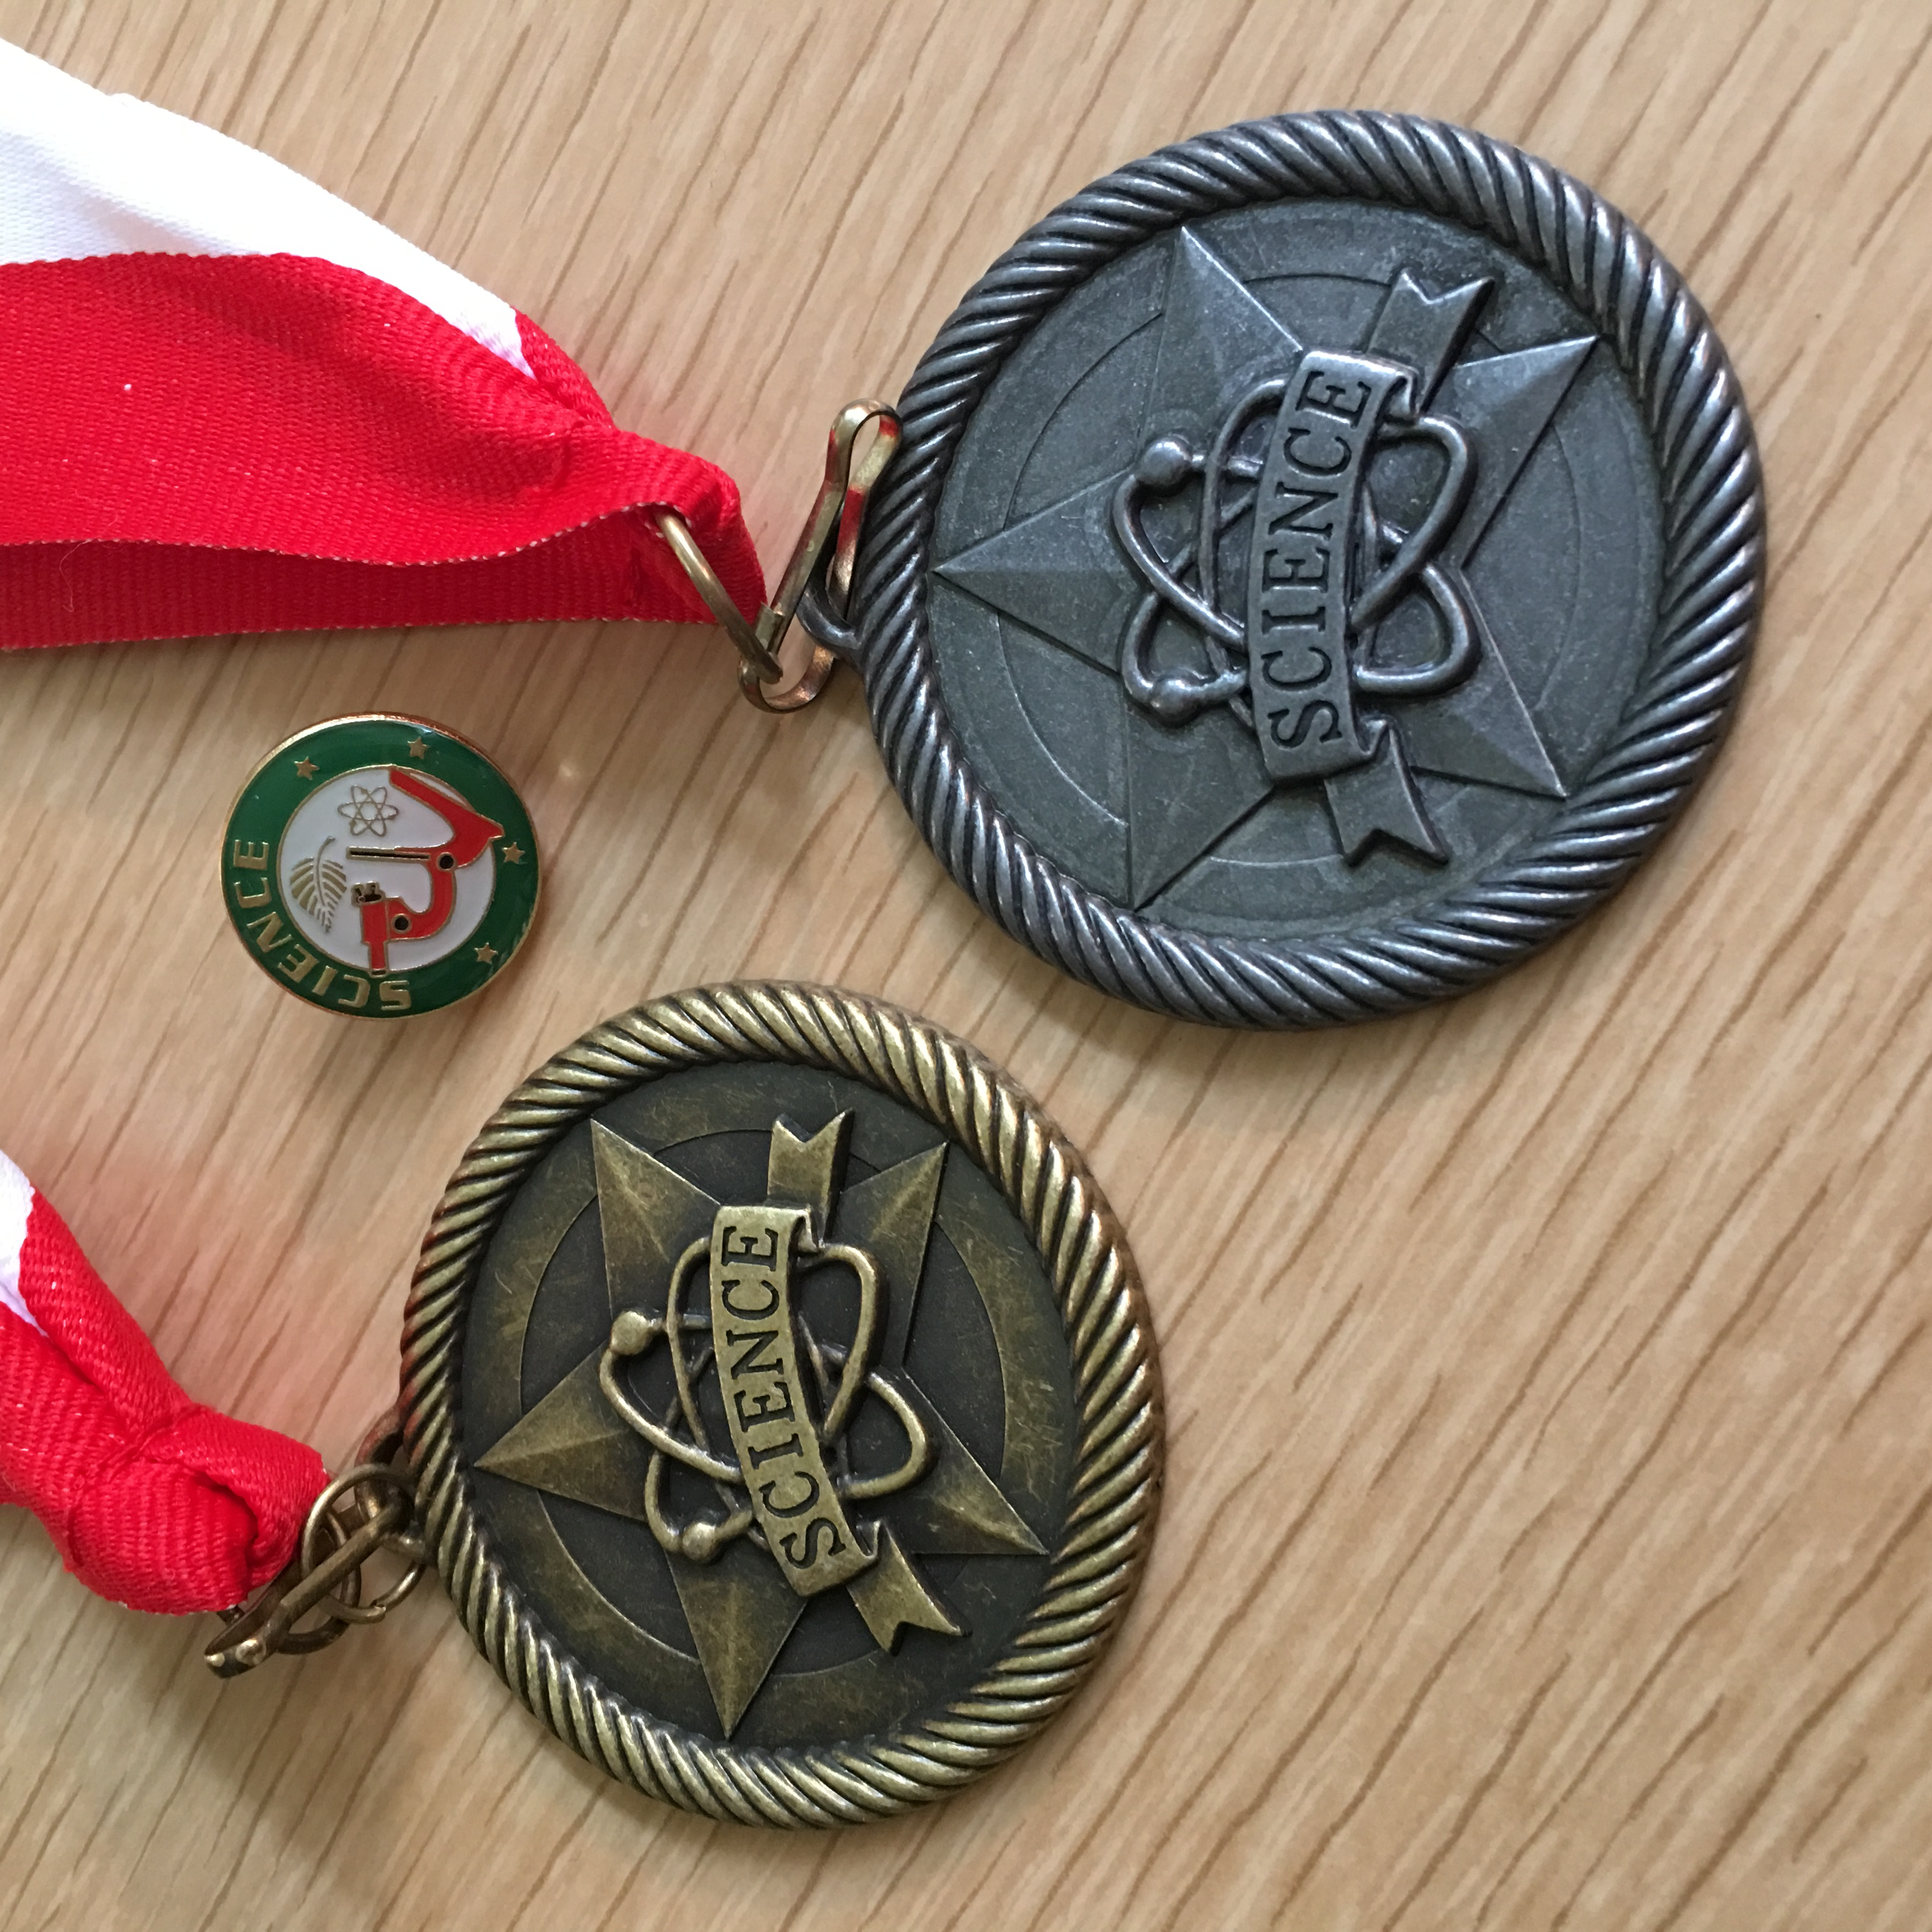 Science Medals!